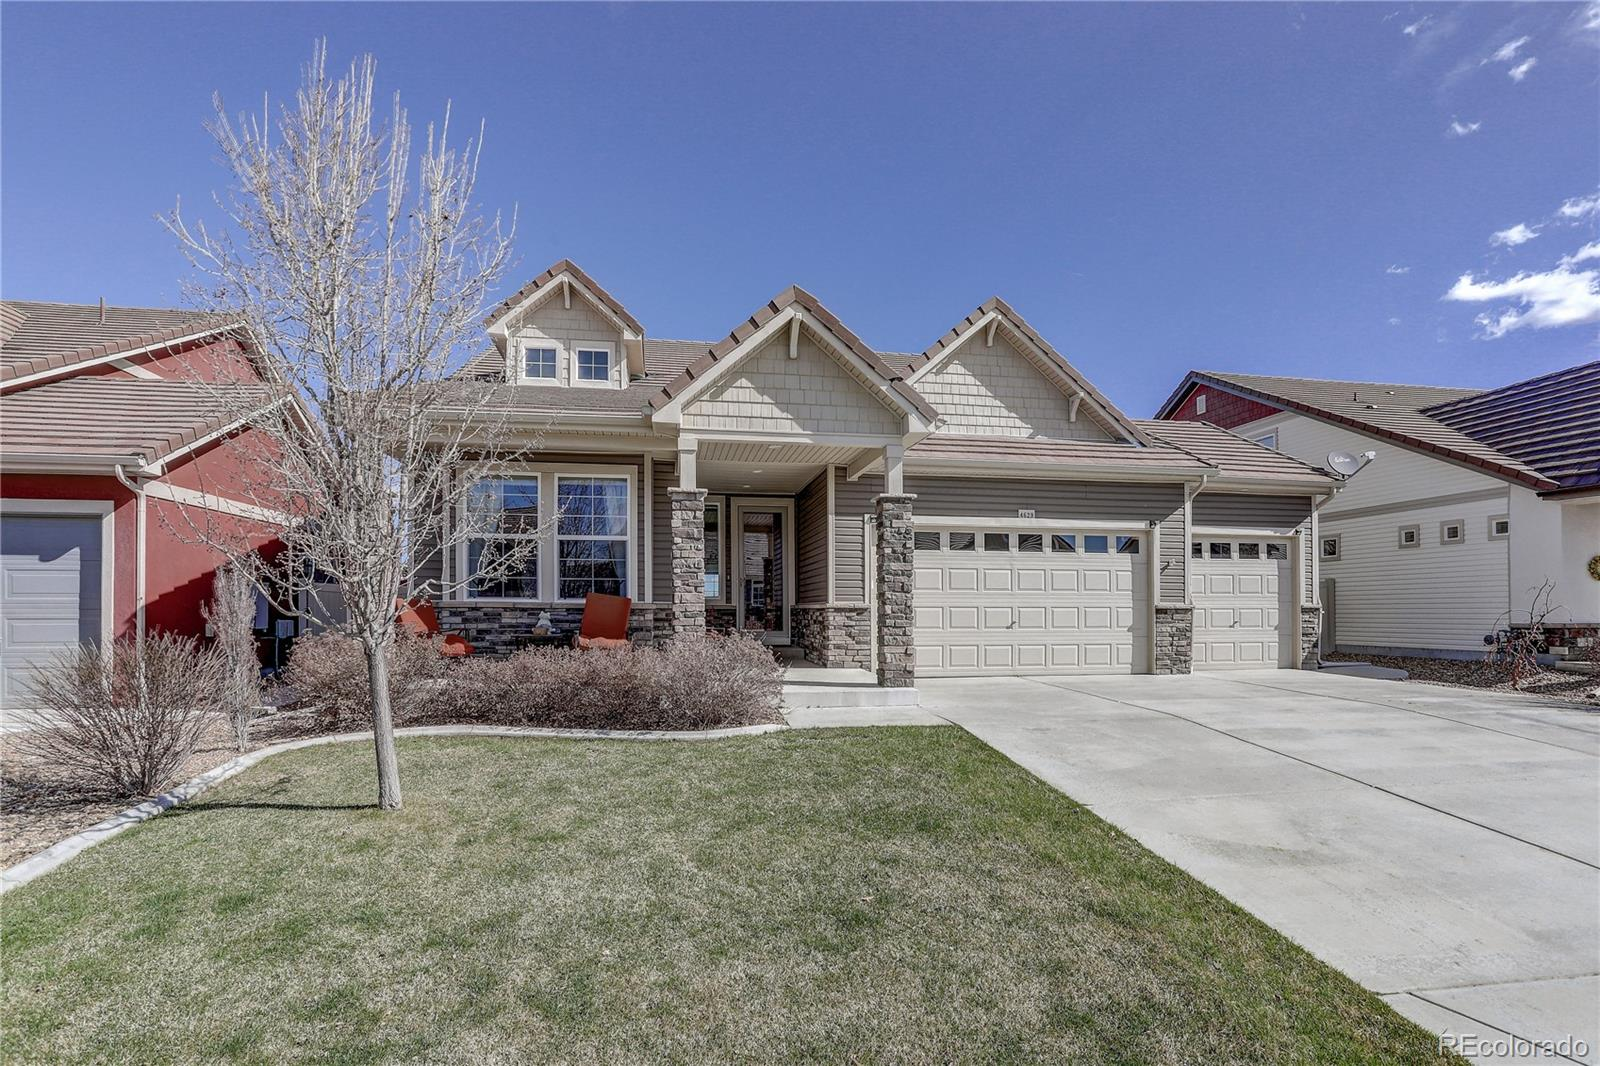 4629 Vinewood Way, Johnstown, CO 80534 - Johnstown, CO real estate listing